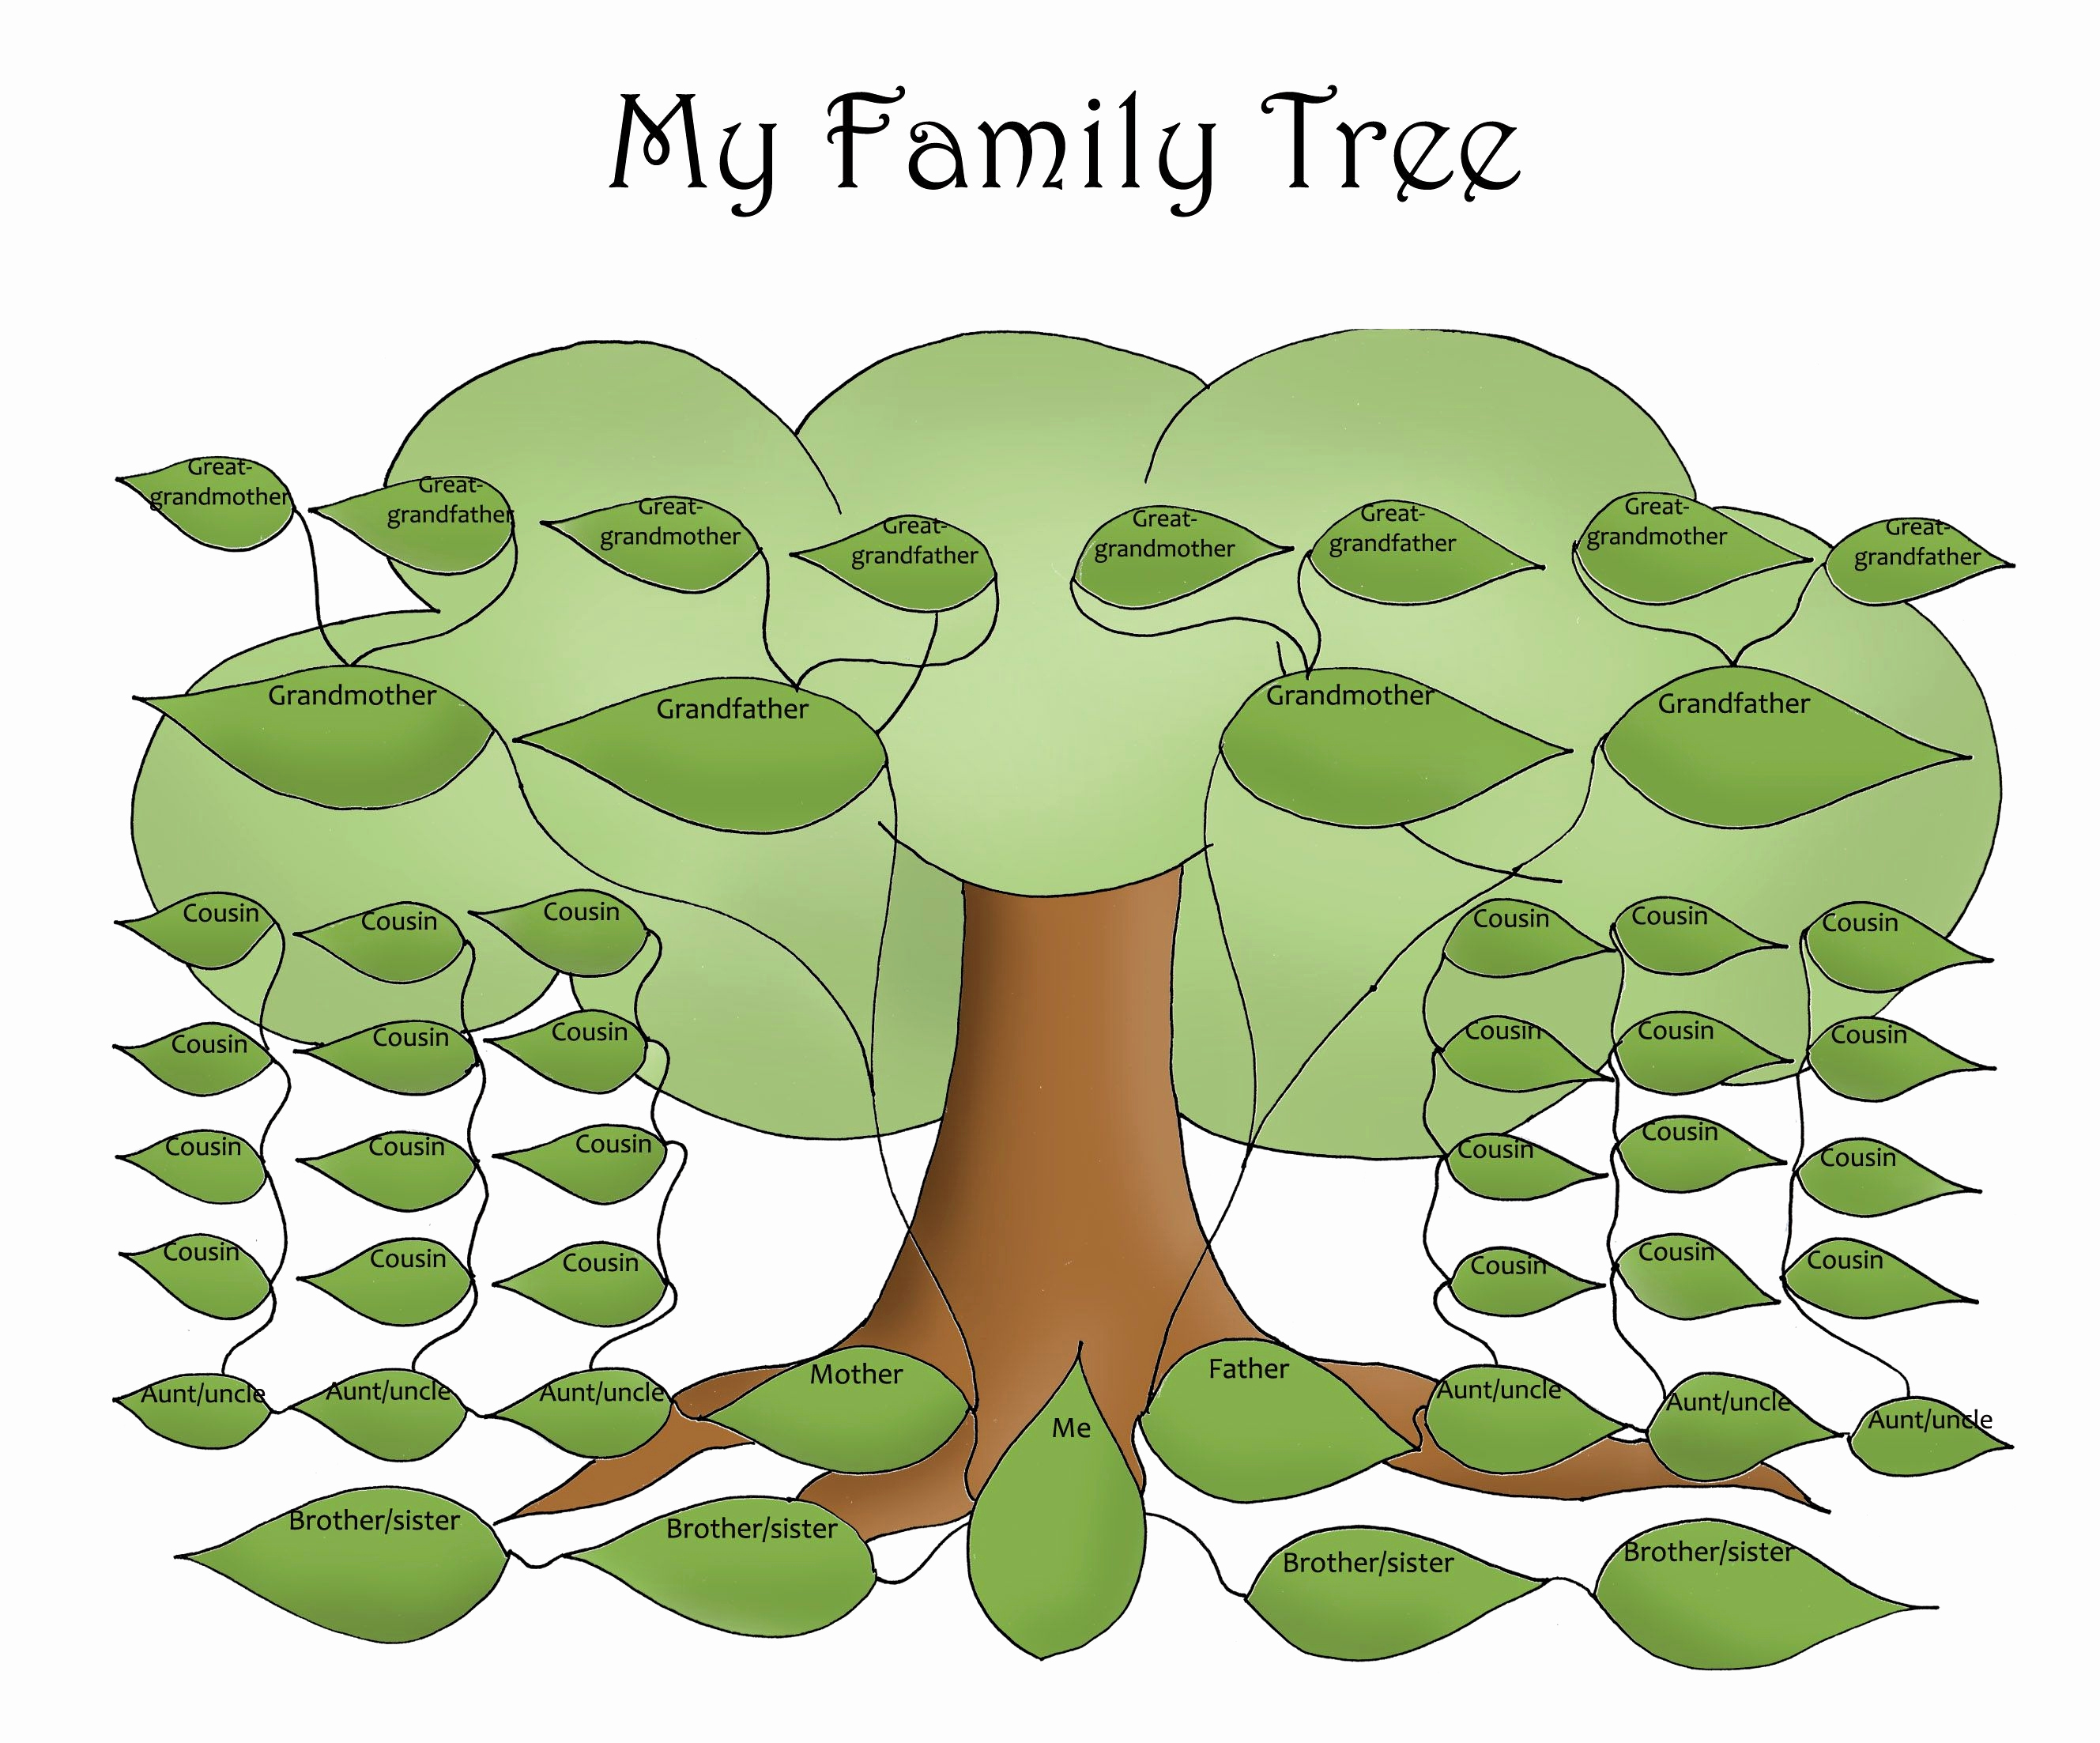 Free Printable Family Tree Awesome Free Editable Family Tree Template Daily Roabox